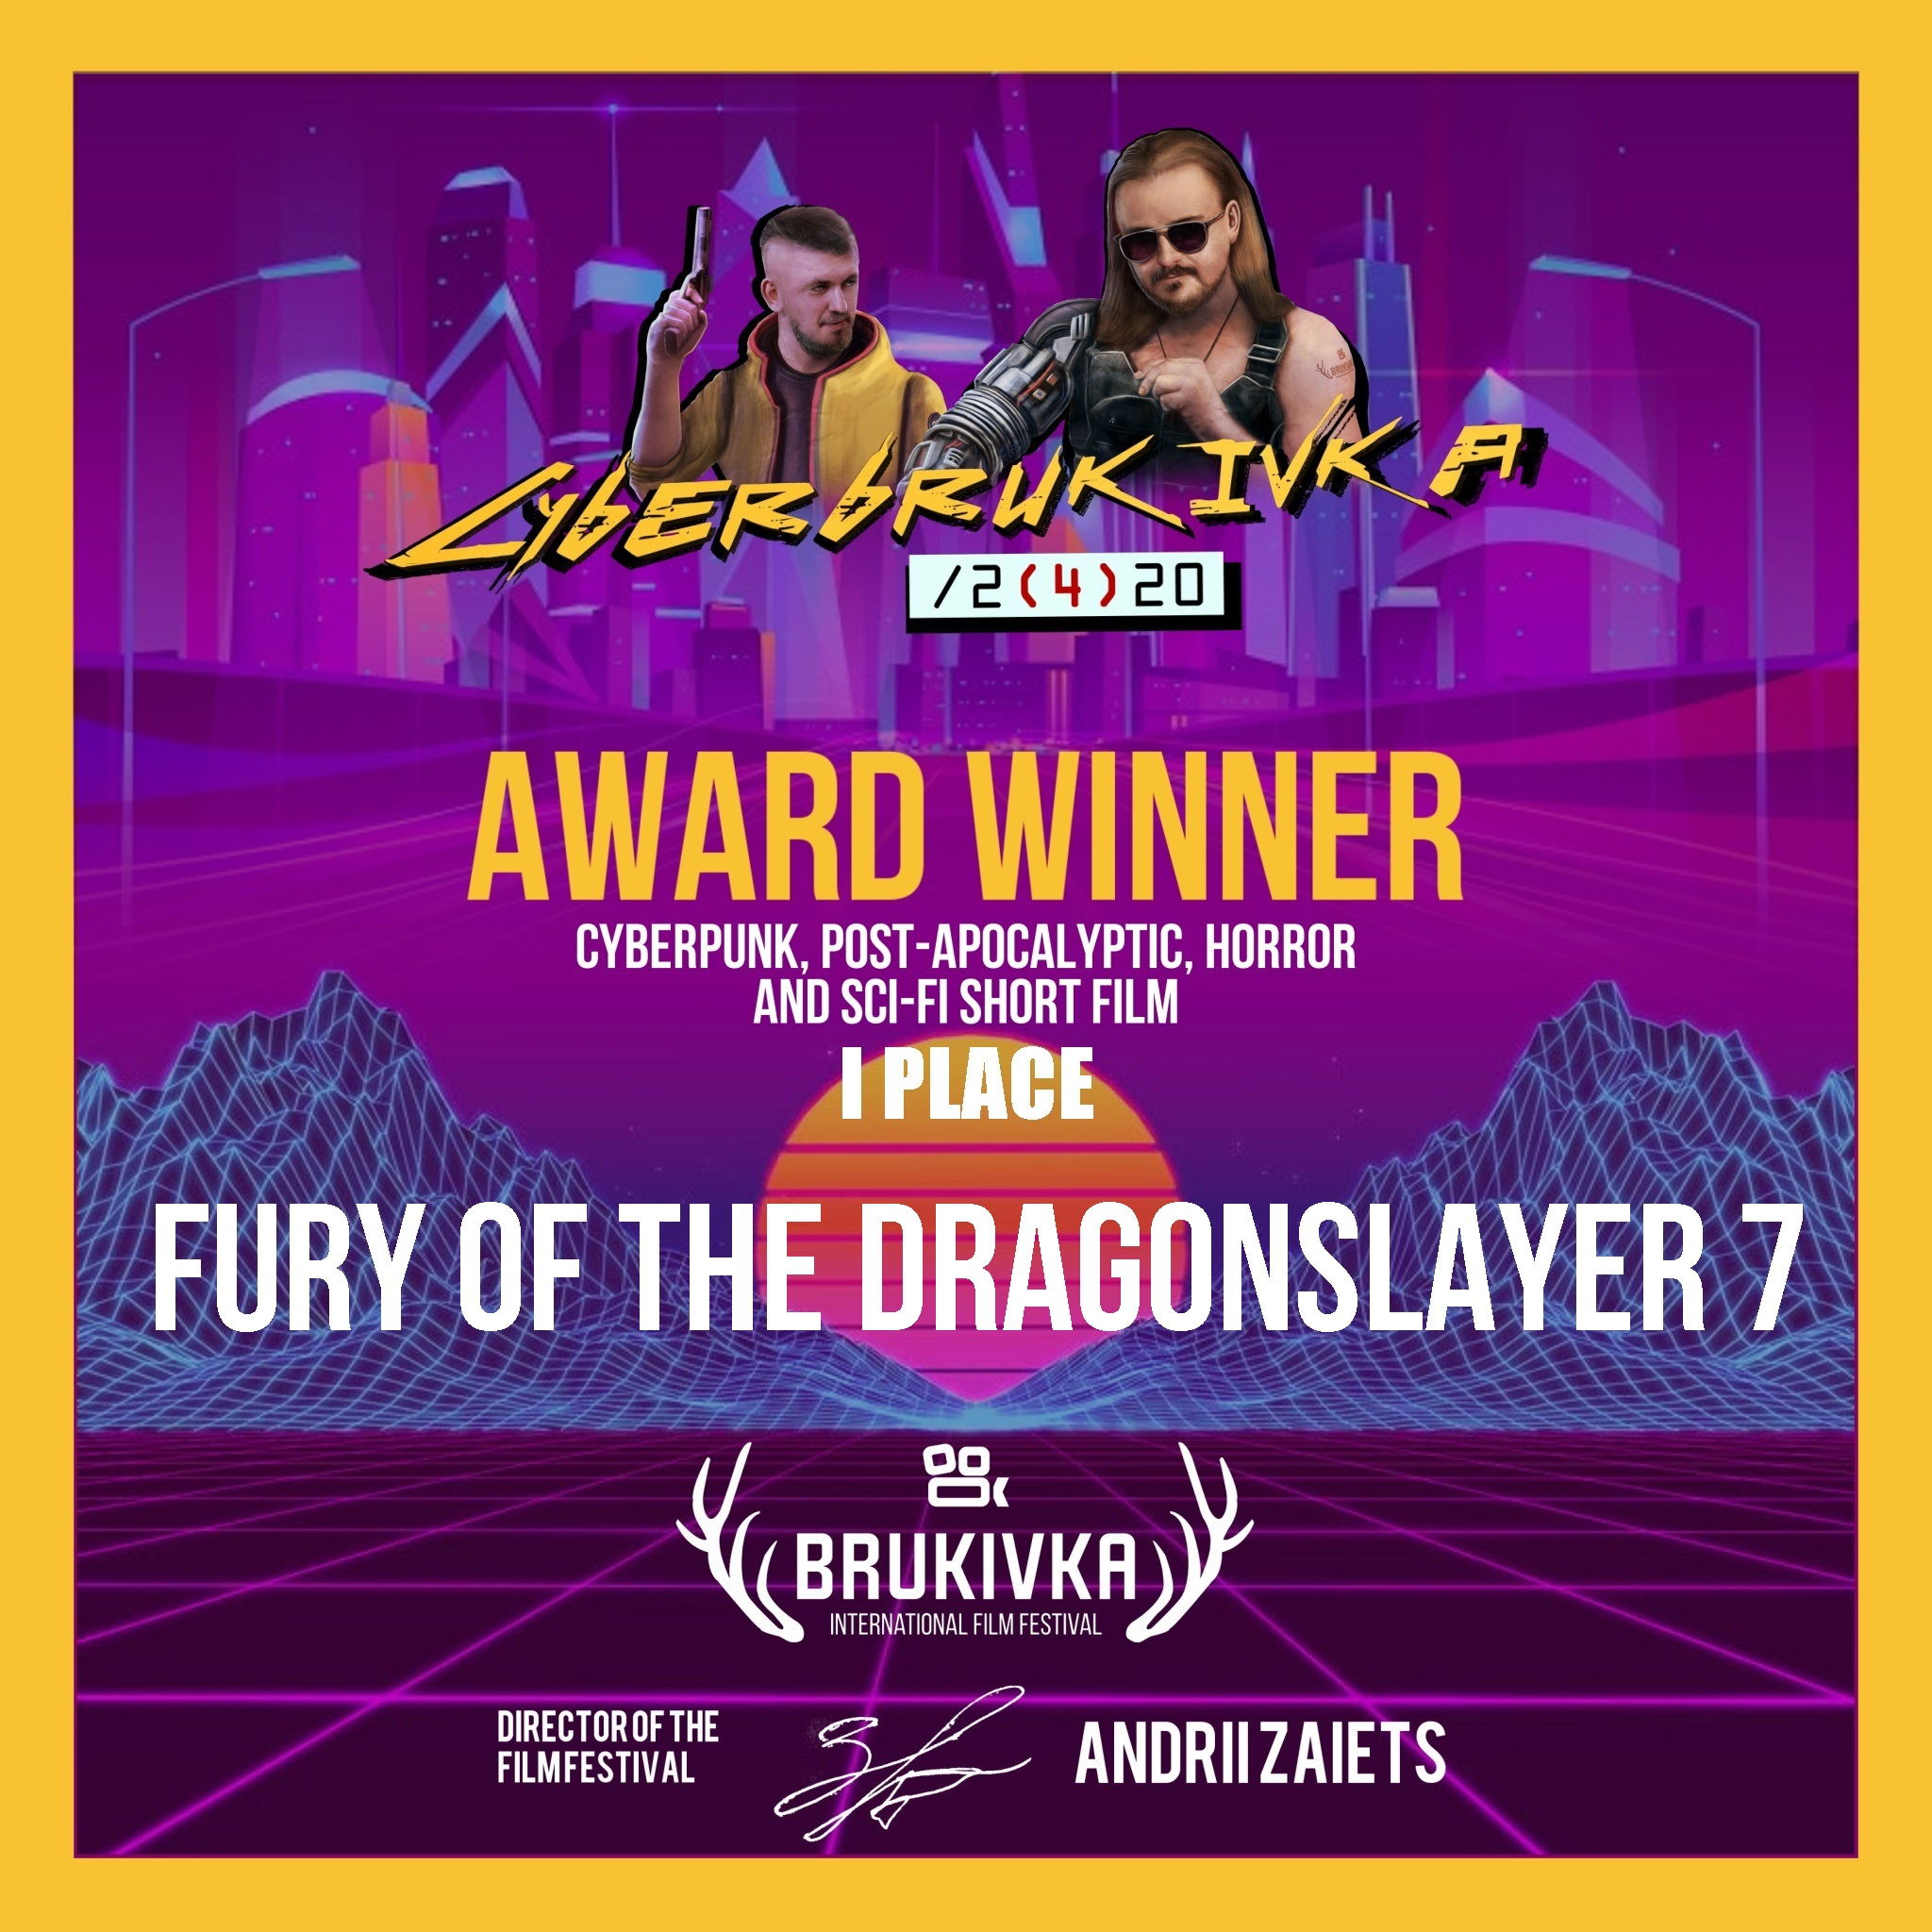 Fury of the dragonslayer 7